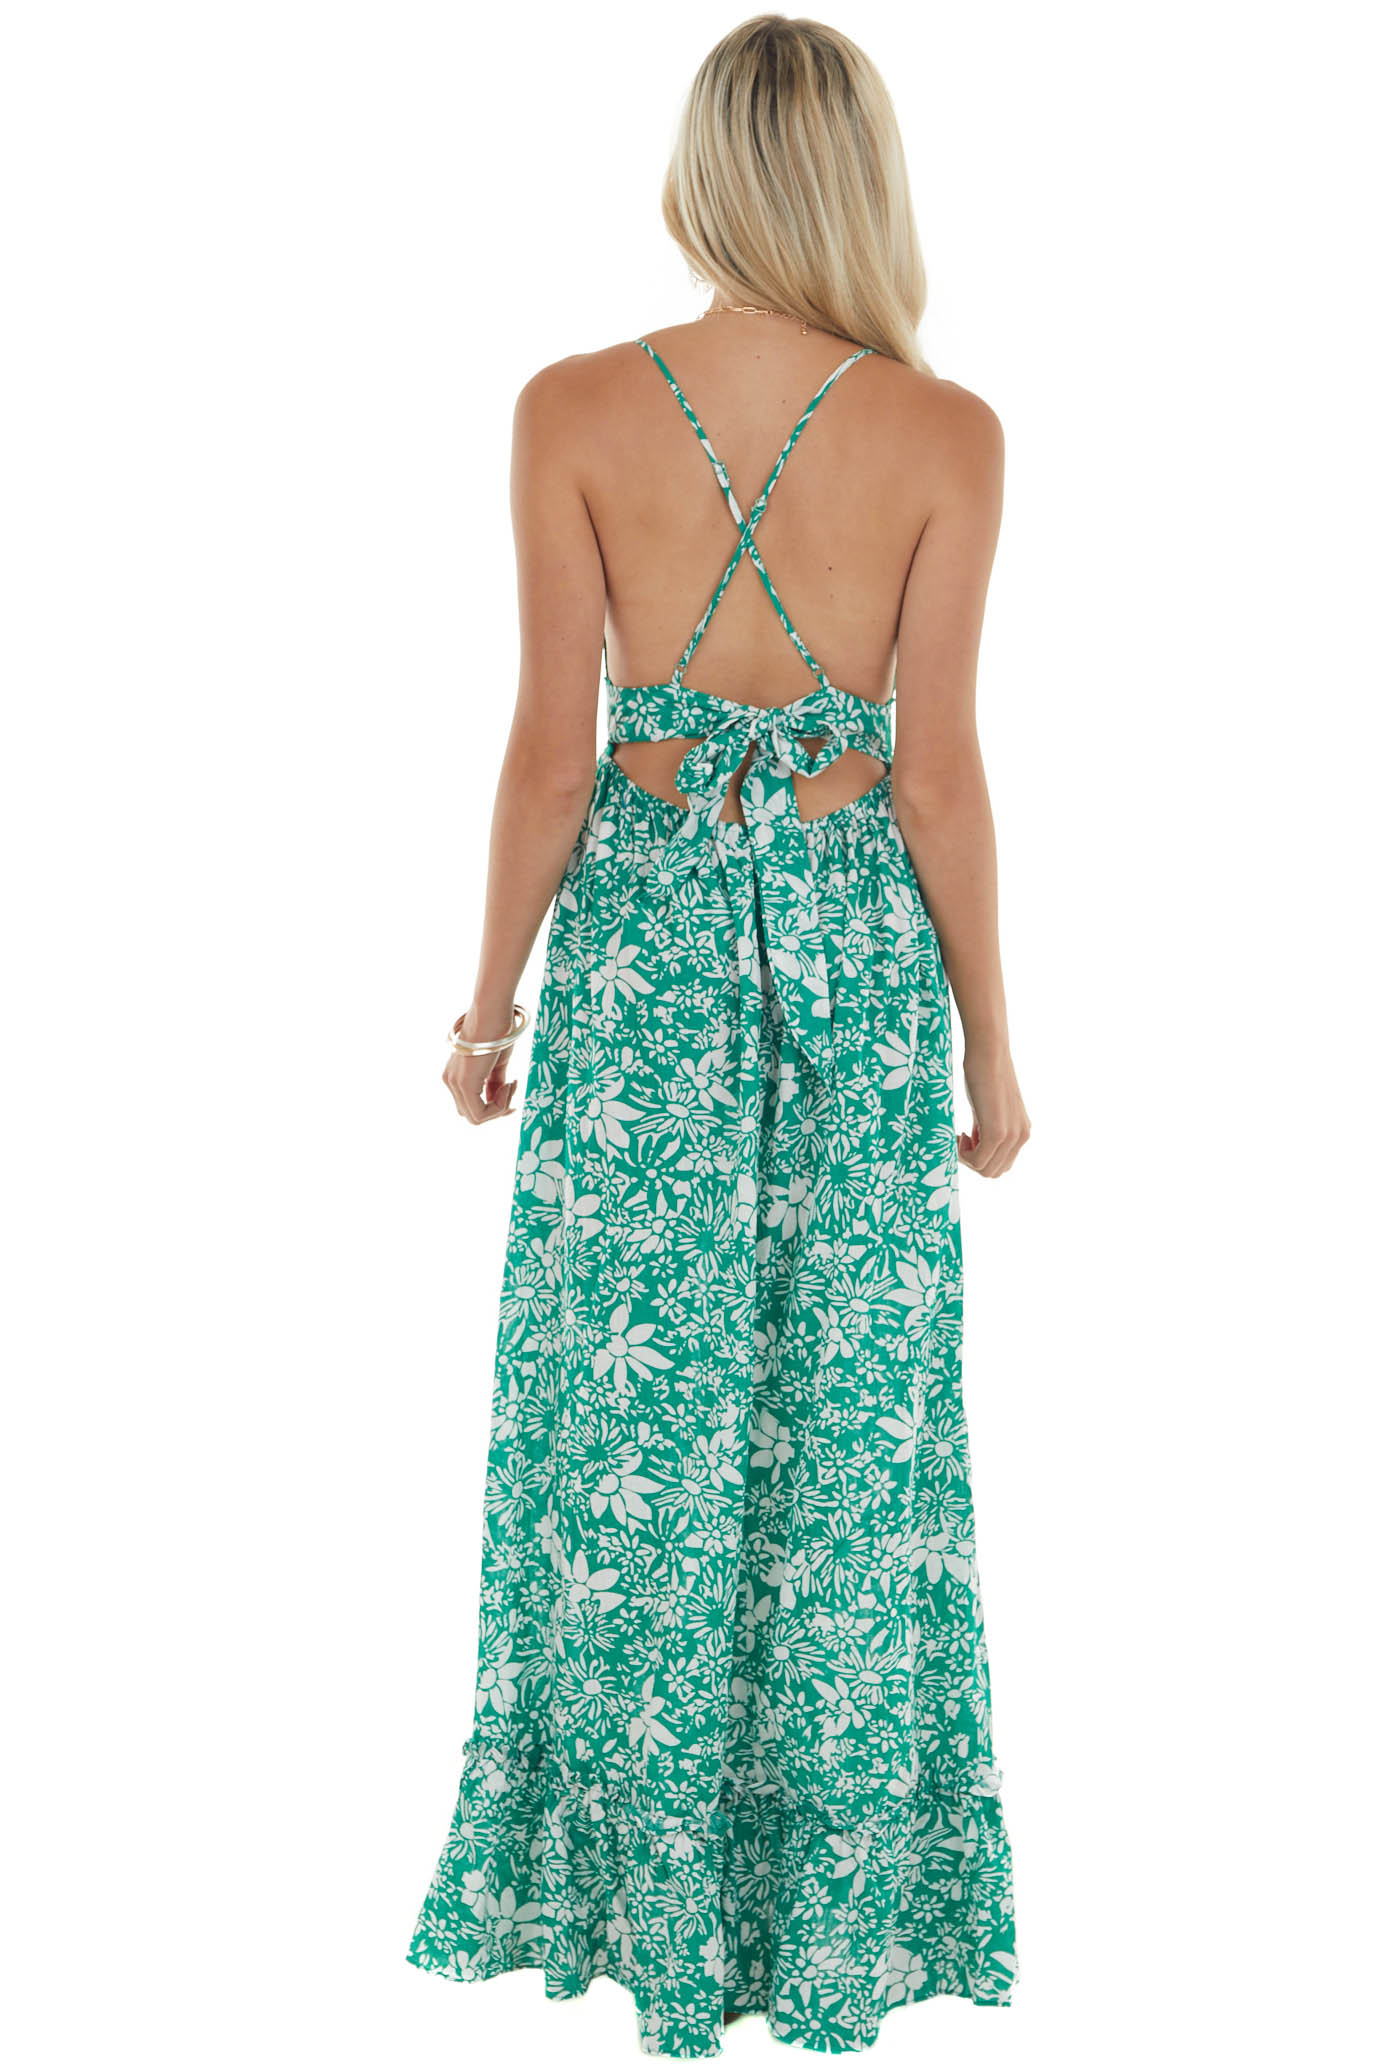 Jade Green Floral Dress with Crochet Lace